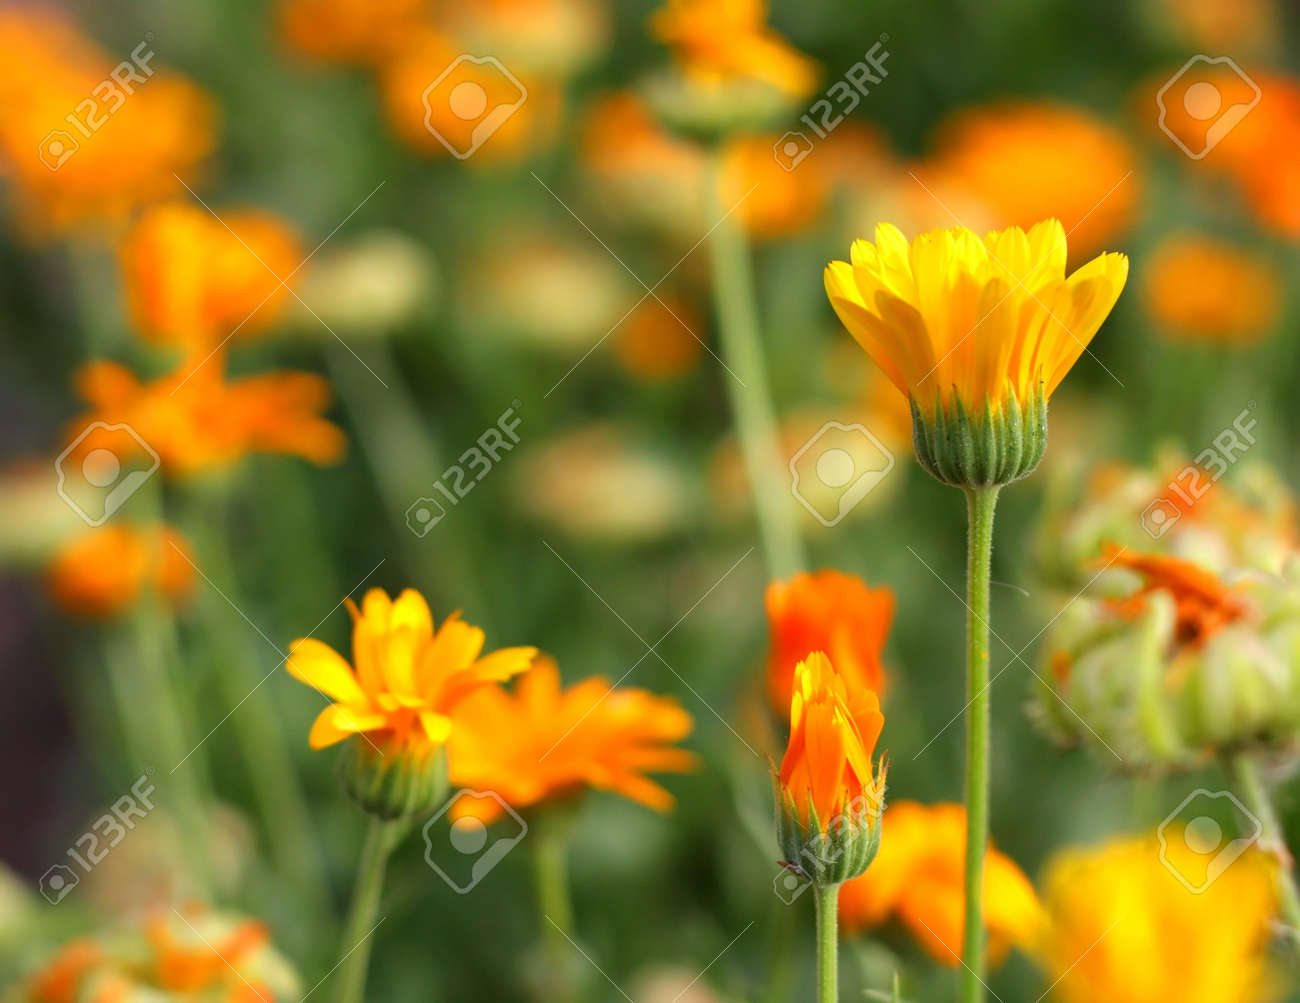 Yellow flower in garden. Shallow DOF. Stock Photo - 7380536